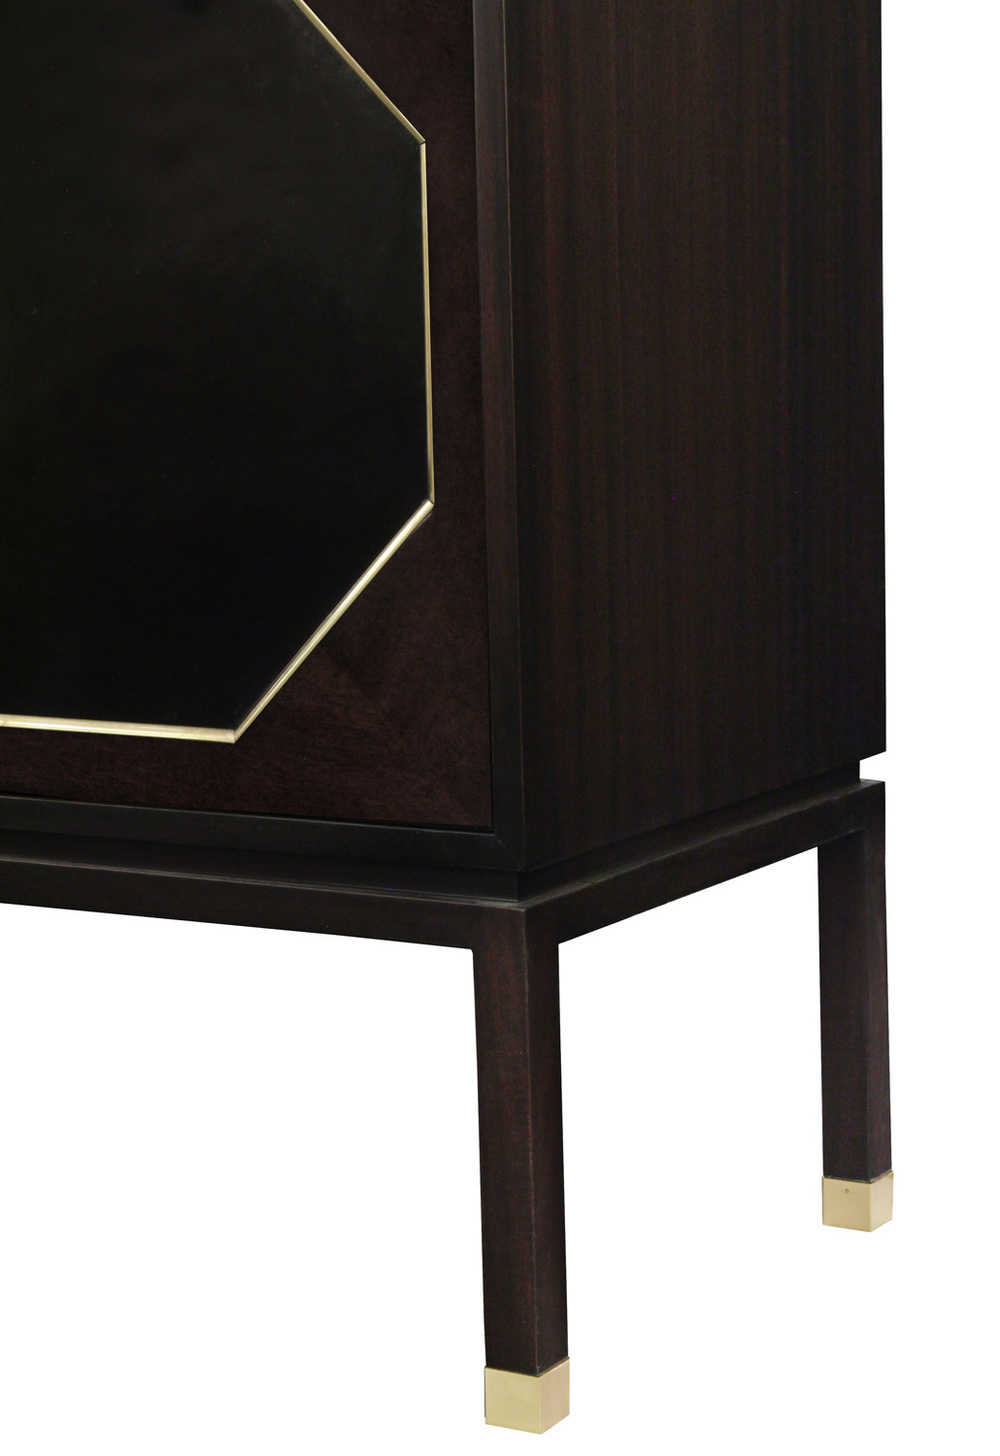 Probber 95 2dr w6sides leather cabinet42 detail4 hires.jpg